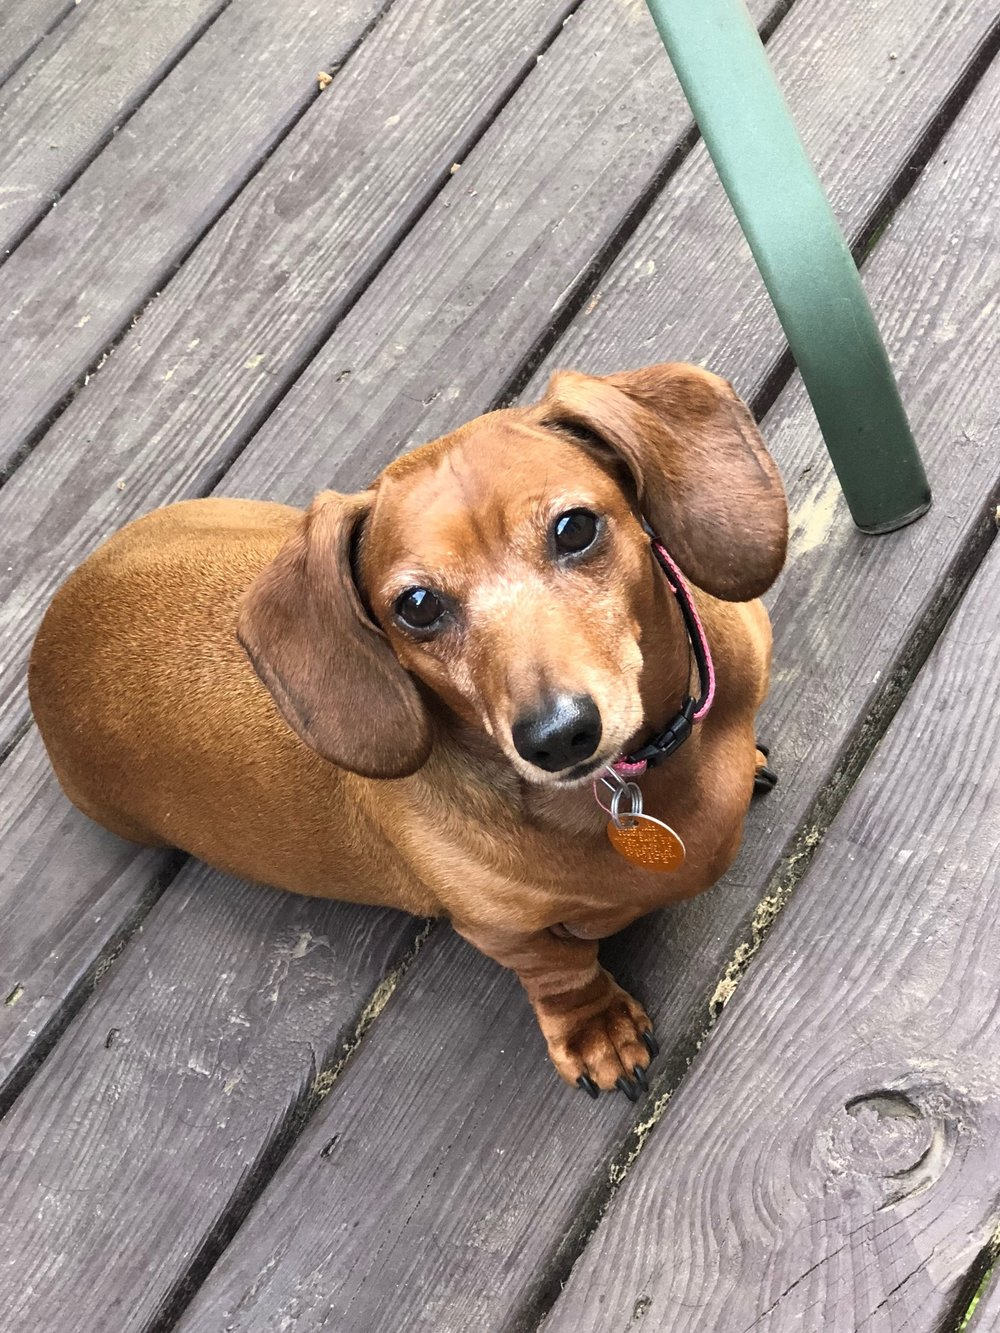 pumpkin - 6 year old Dachshund from Bella Vista, ARNeed of a small rear-end wheelchair: $180Donations received: $180.00 (Updated 8/22/2018)